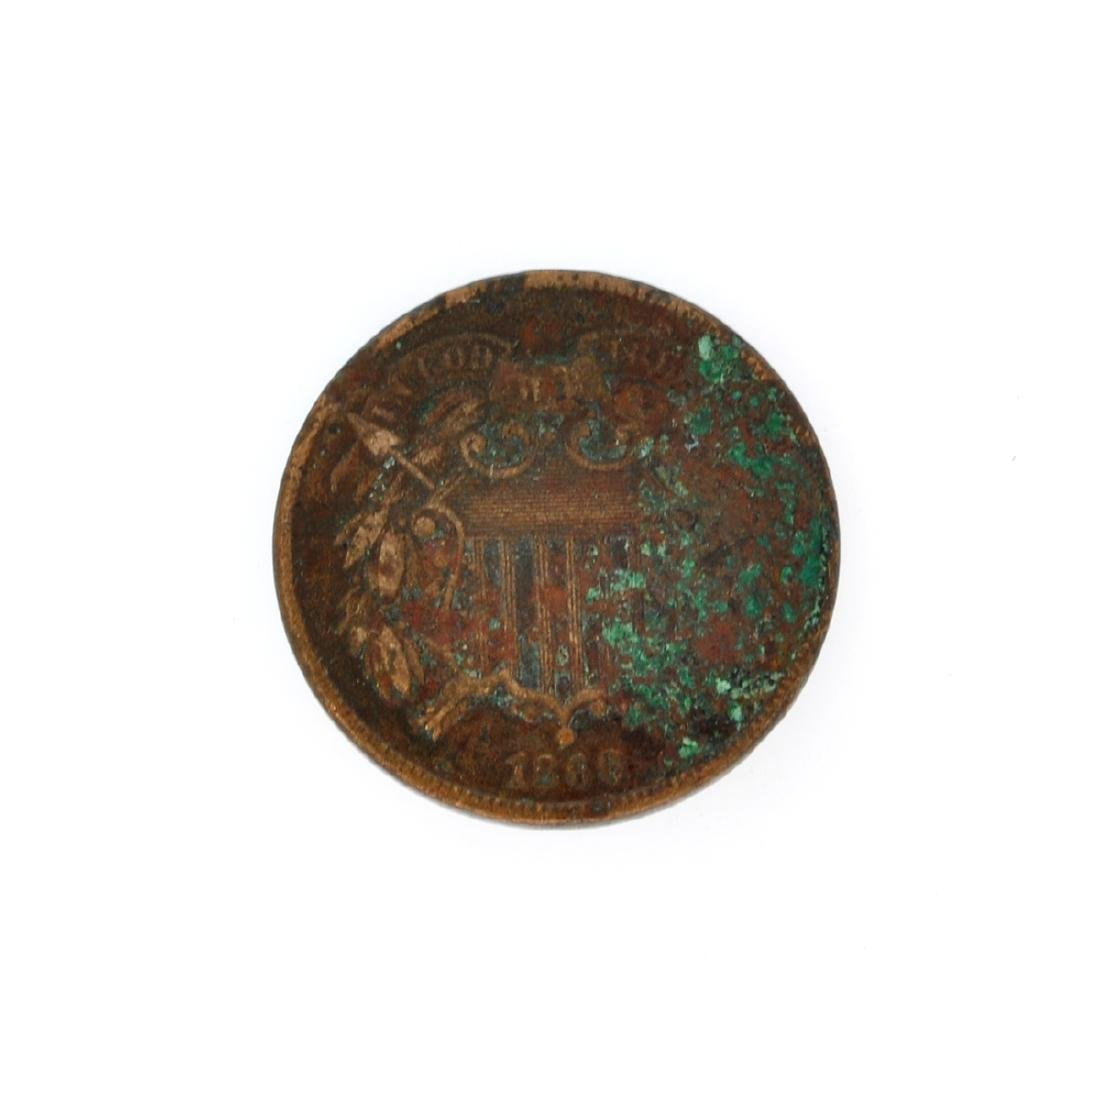 Rare 1866 Two-Cents Piece Coin